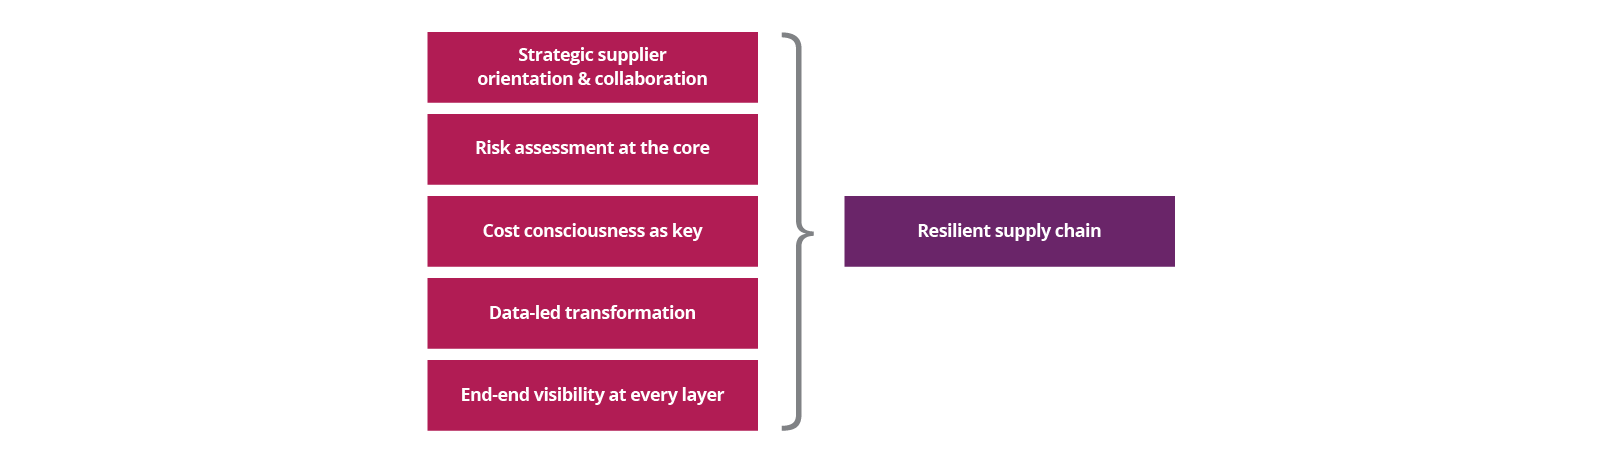 Resilient supply chain diagram